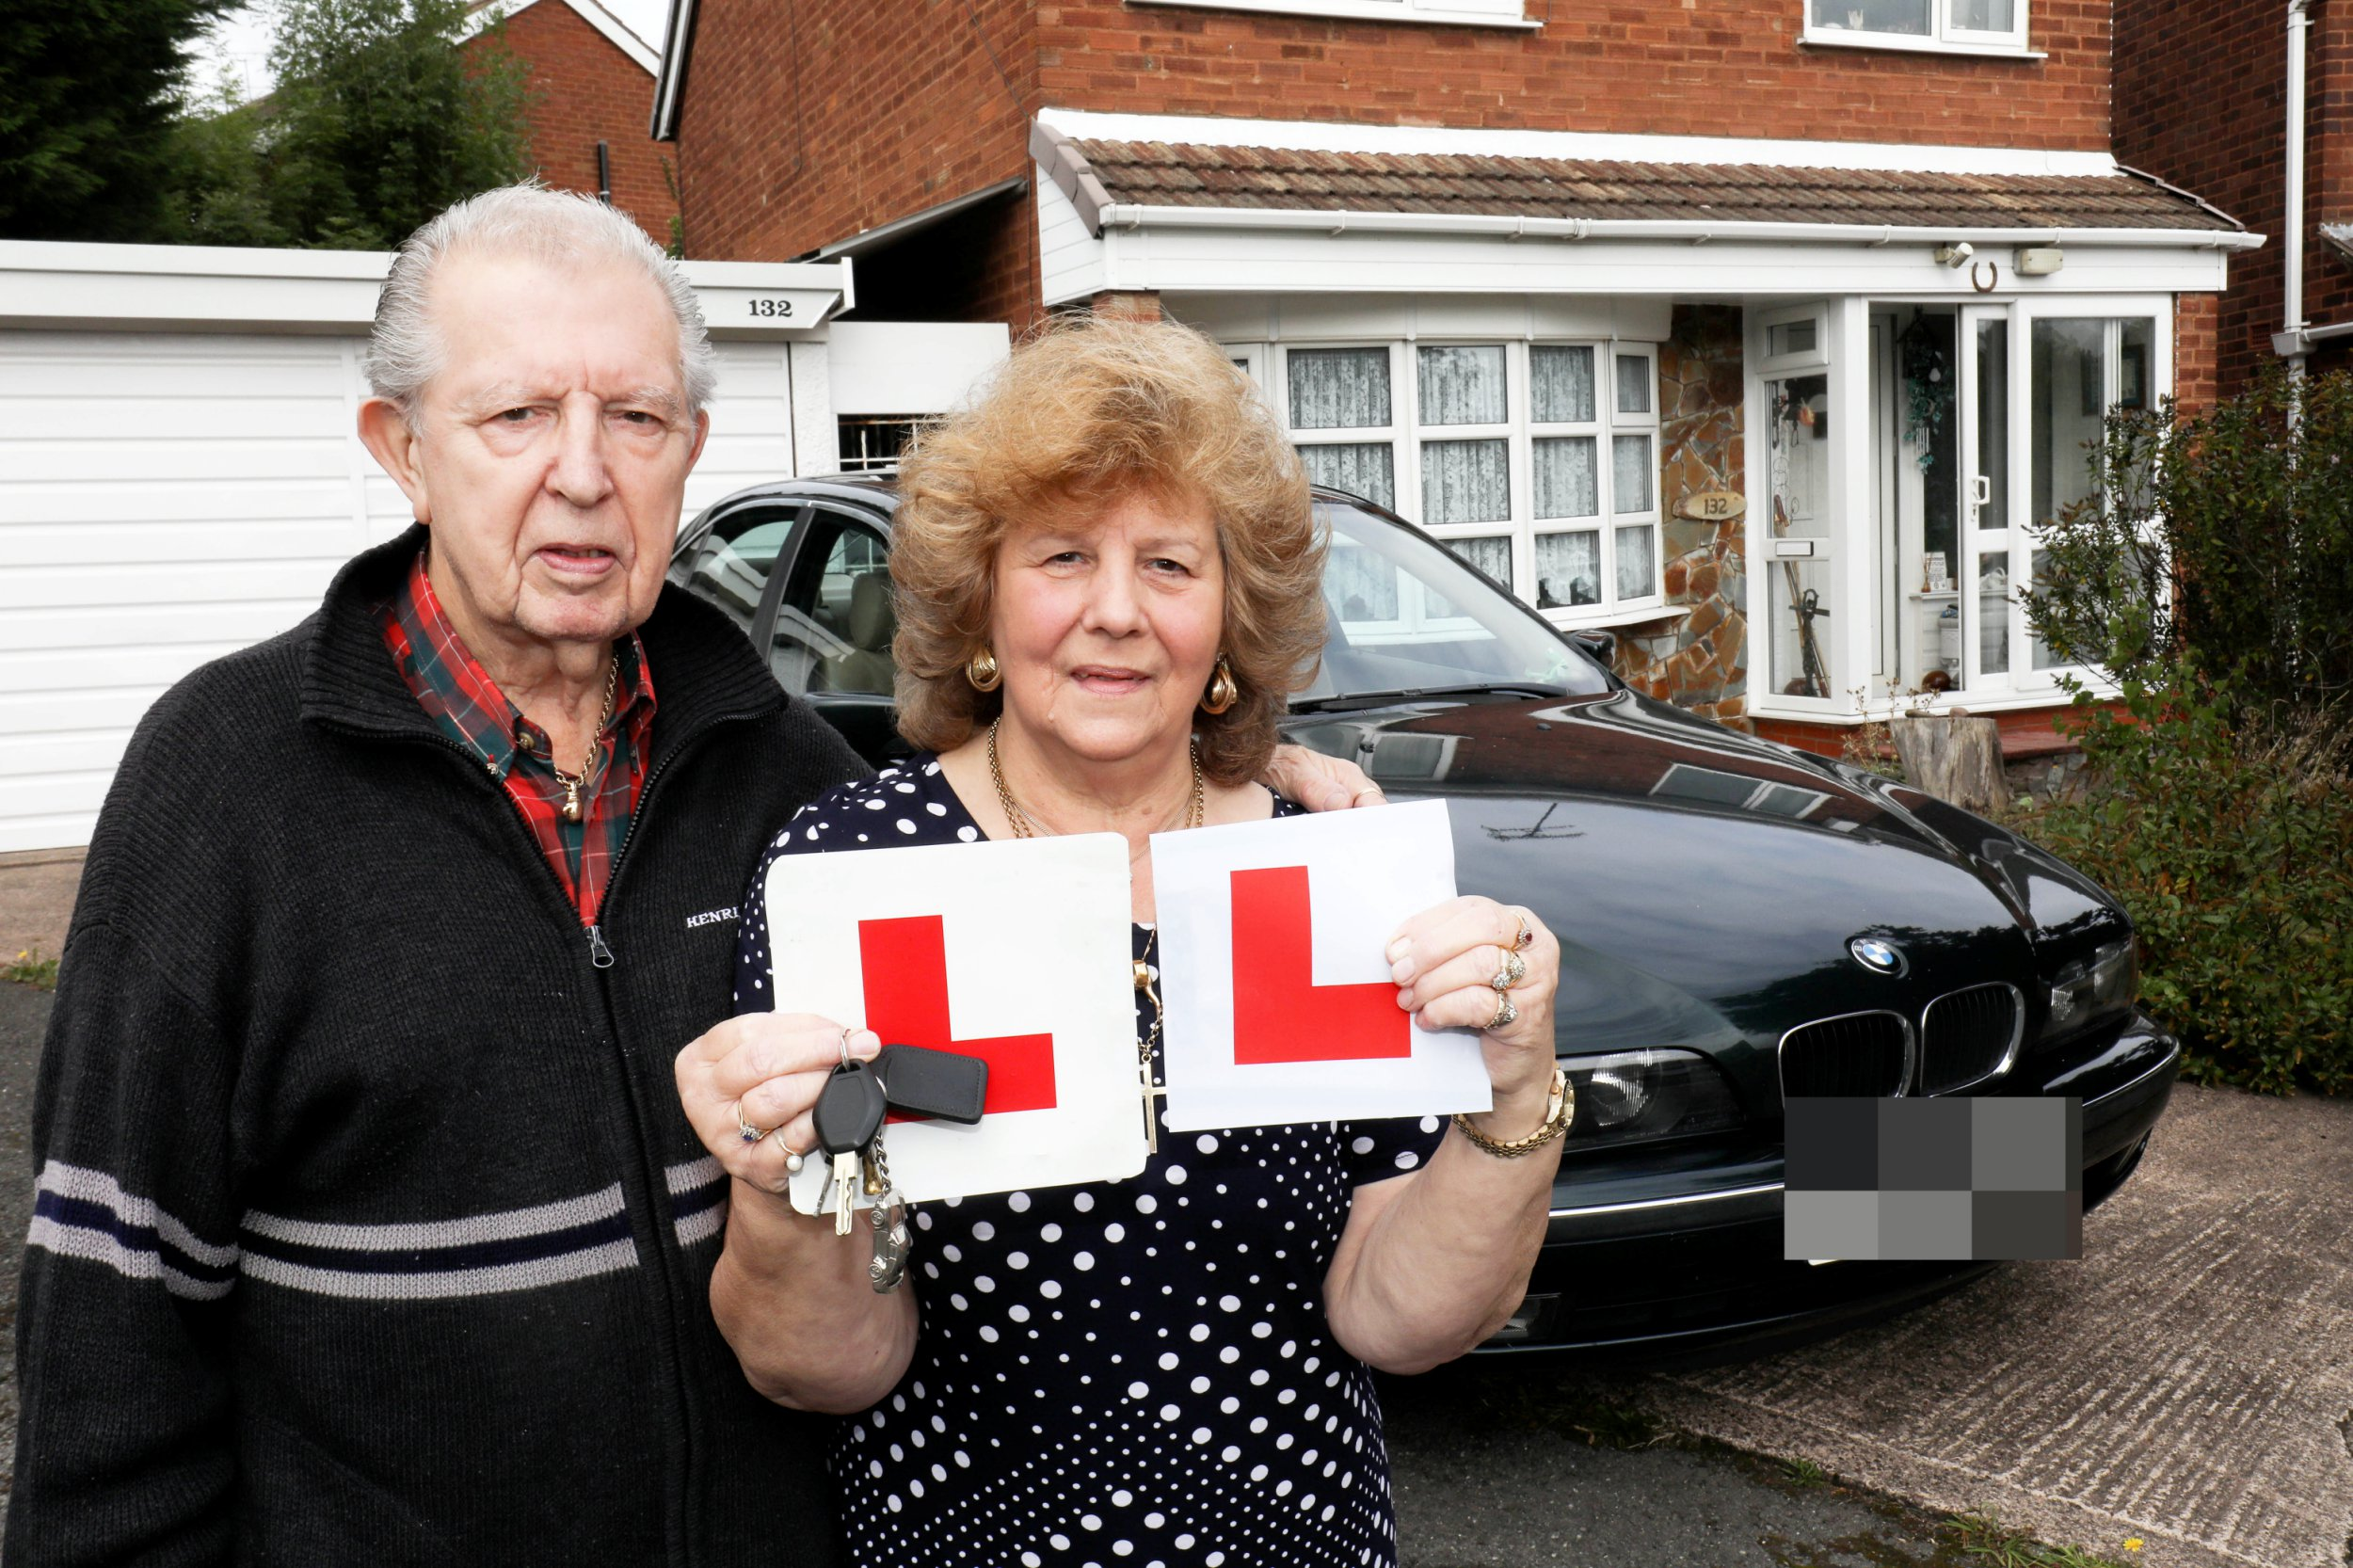 June Evans, 75, with her husband Brain, 83, from Birmingham, West Midlands. See NTI story NTIDRIVER. A pensioner has become one of the UK?s oldest to their pass driving test - after starting 50 years ago. June Evans, 75, was 24 when she first got behind the wheel ? but decided to pack it up not long after. The great gran-of-one, revealed it has taken her 36 years to get back in the driving seat ? after her sons Gary, 53, and Paul, 47 convinced her too. Husband Brian, 83, has been with June all the way through her journey ? even acting as her instructor. June, of Great Barr, Birmingham, had only ever had 25 lessons after starting again but opted for Brian being her teacher afterwards. The 75-year-old had taken her first driving in September 2017 and failed - she then took two more tests this year in April and July but sadly failed both. Fourth time lucky, she managed to finally pass her test on Tuesday, September 4 at the Kingstanding driving test centre, Birmingham.